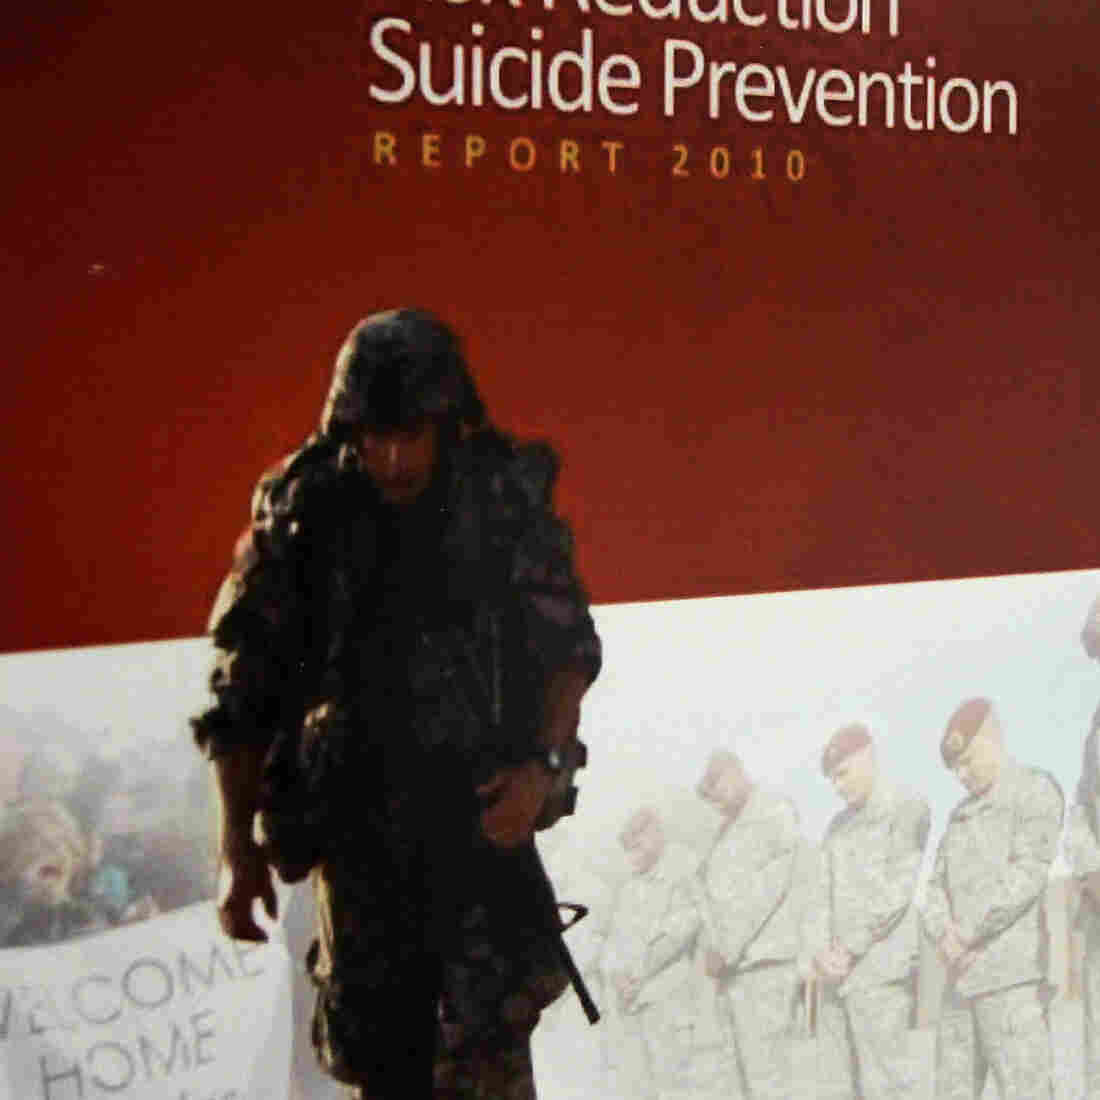 U.S. Military's Suicide Rate Surpassed Combat Deaths In 2012